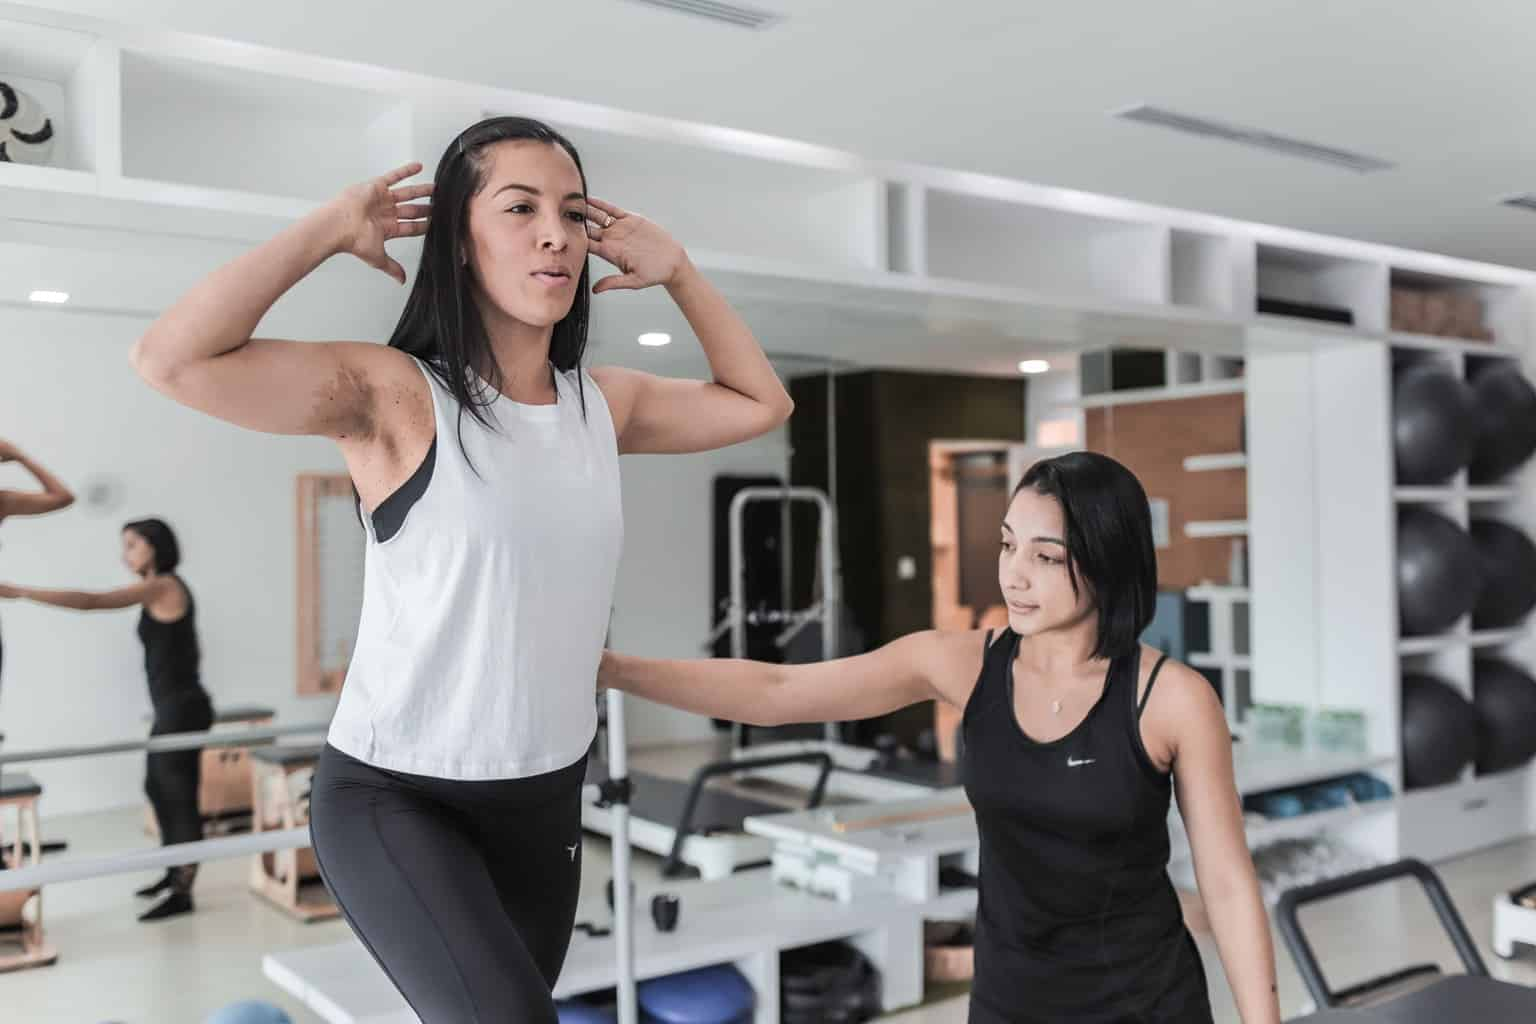 Two girls spotting each other while working out